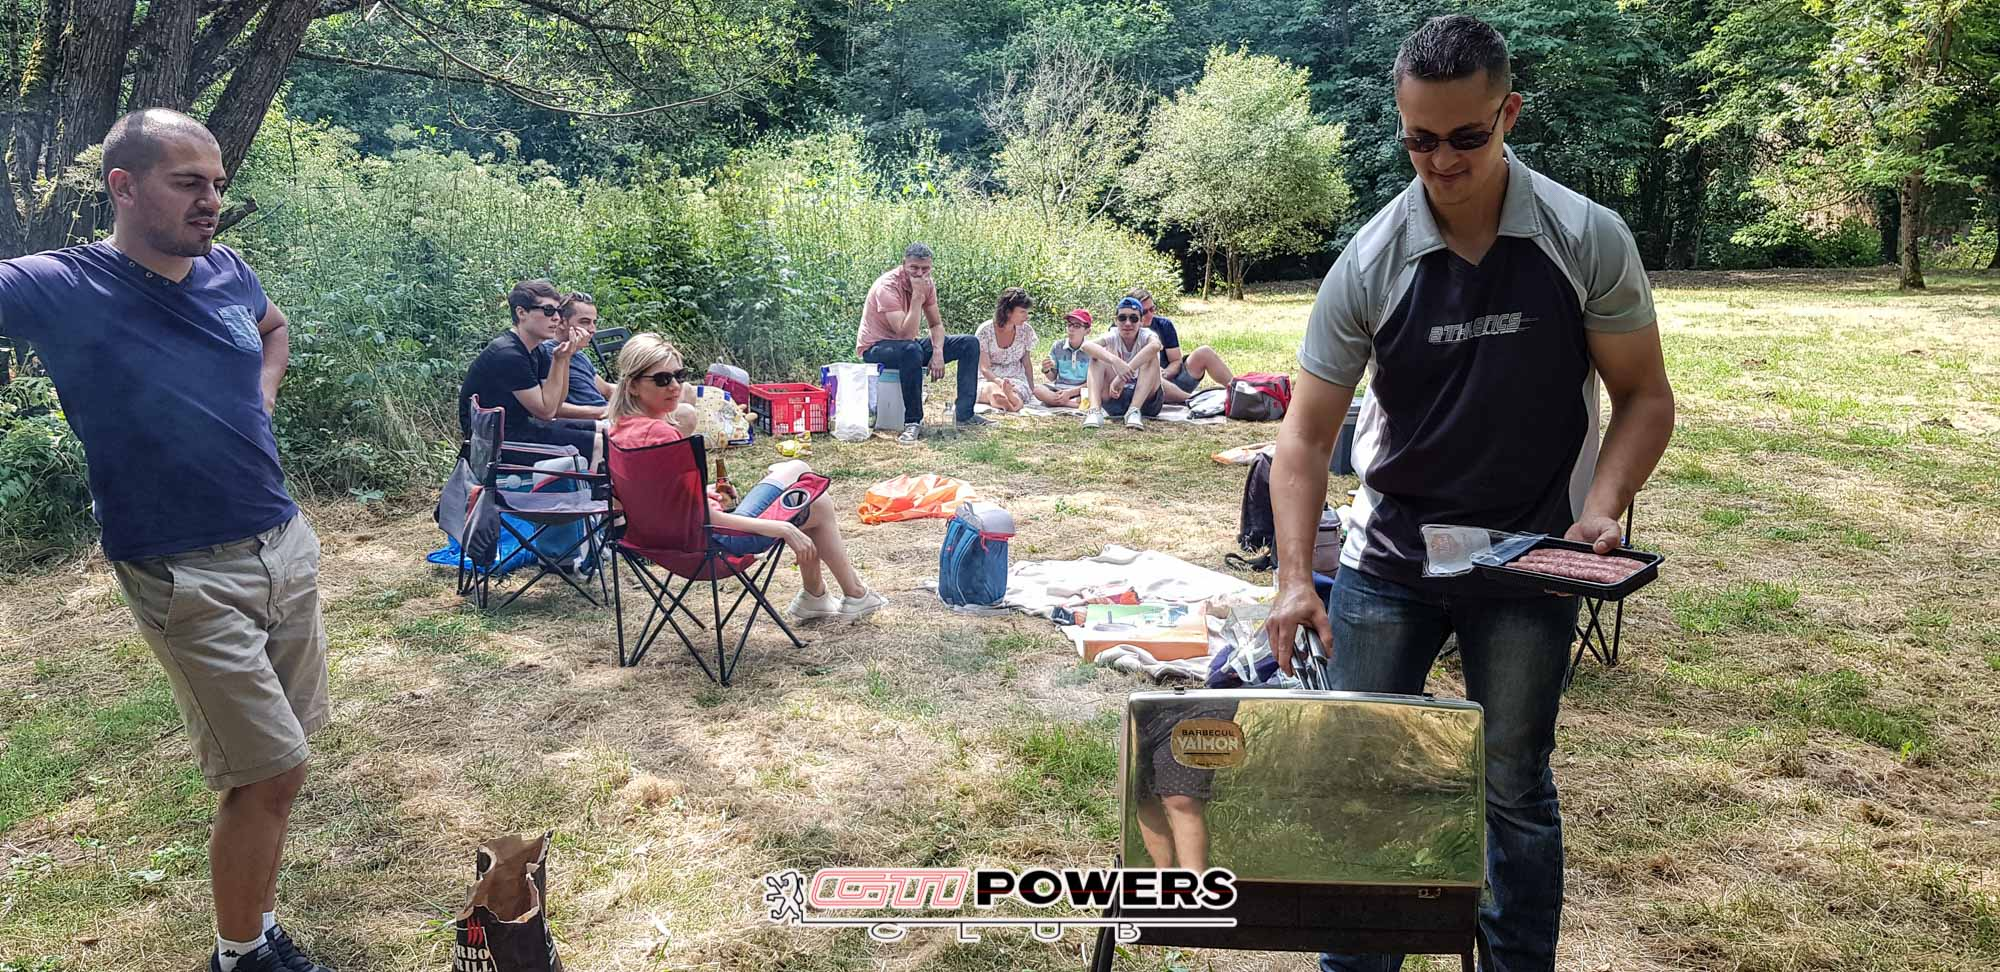 GTIPOWERS Day PAM - Dimanche 22 Juillet 2018 Gtipow37